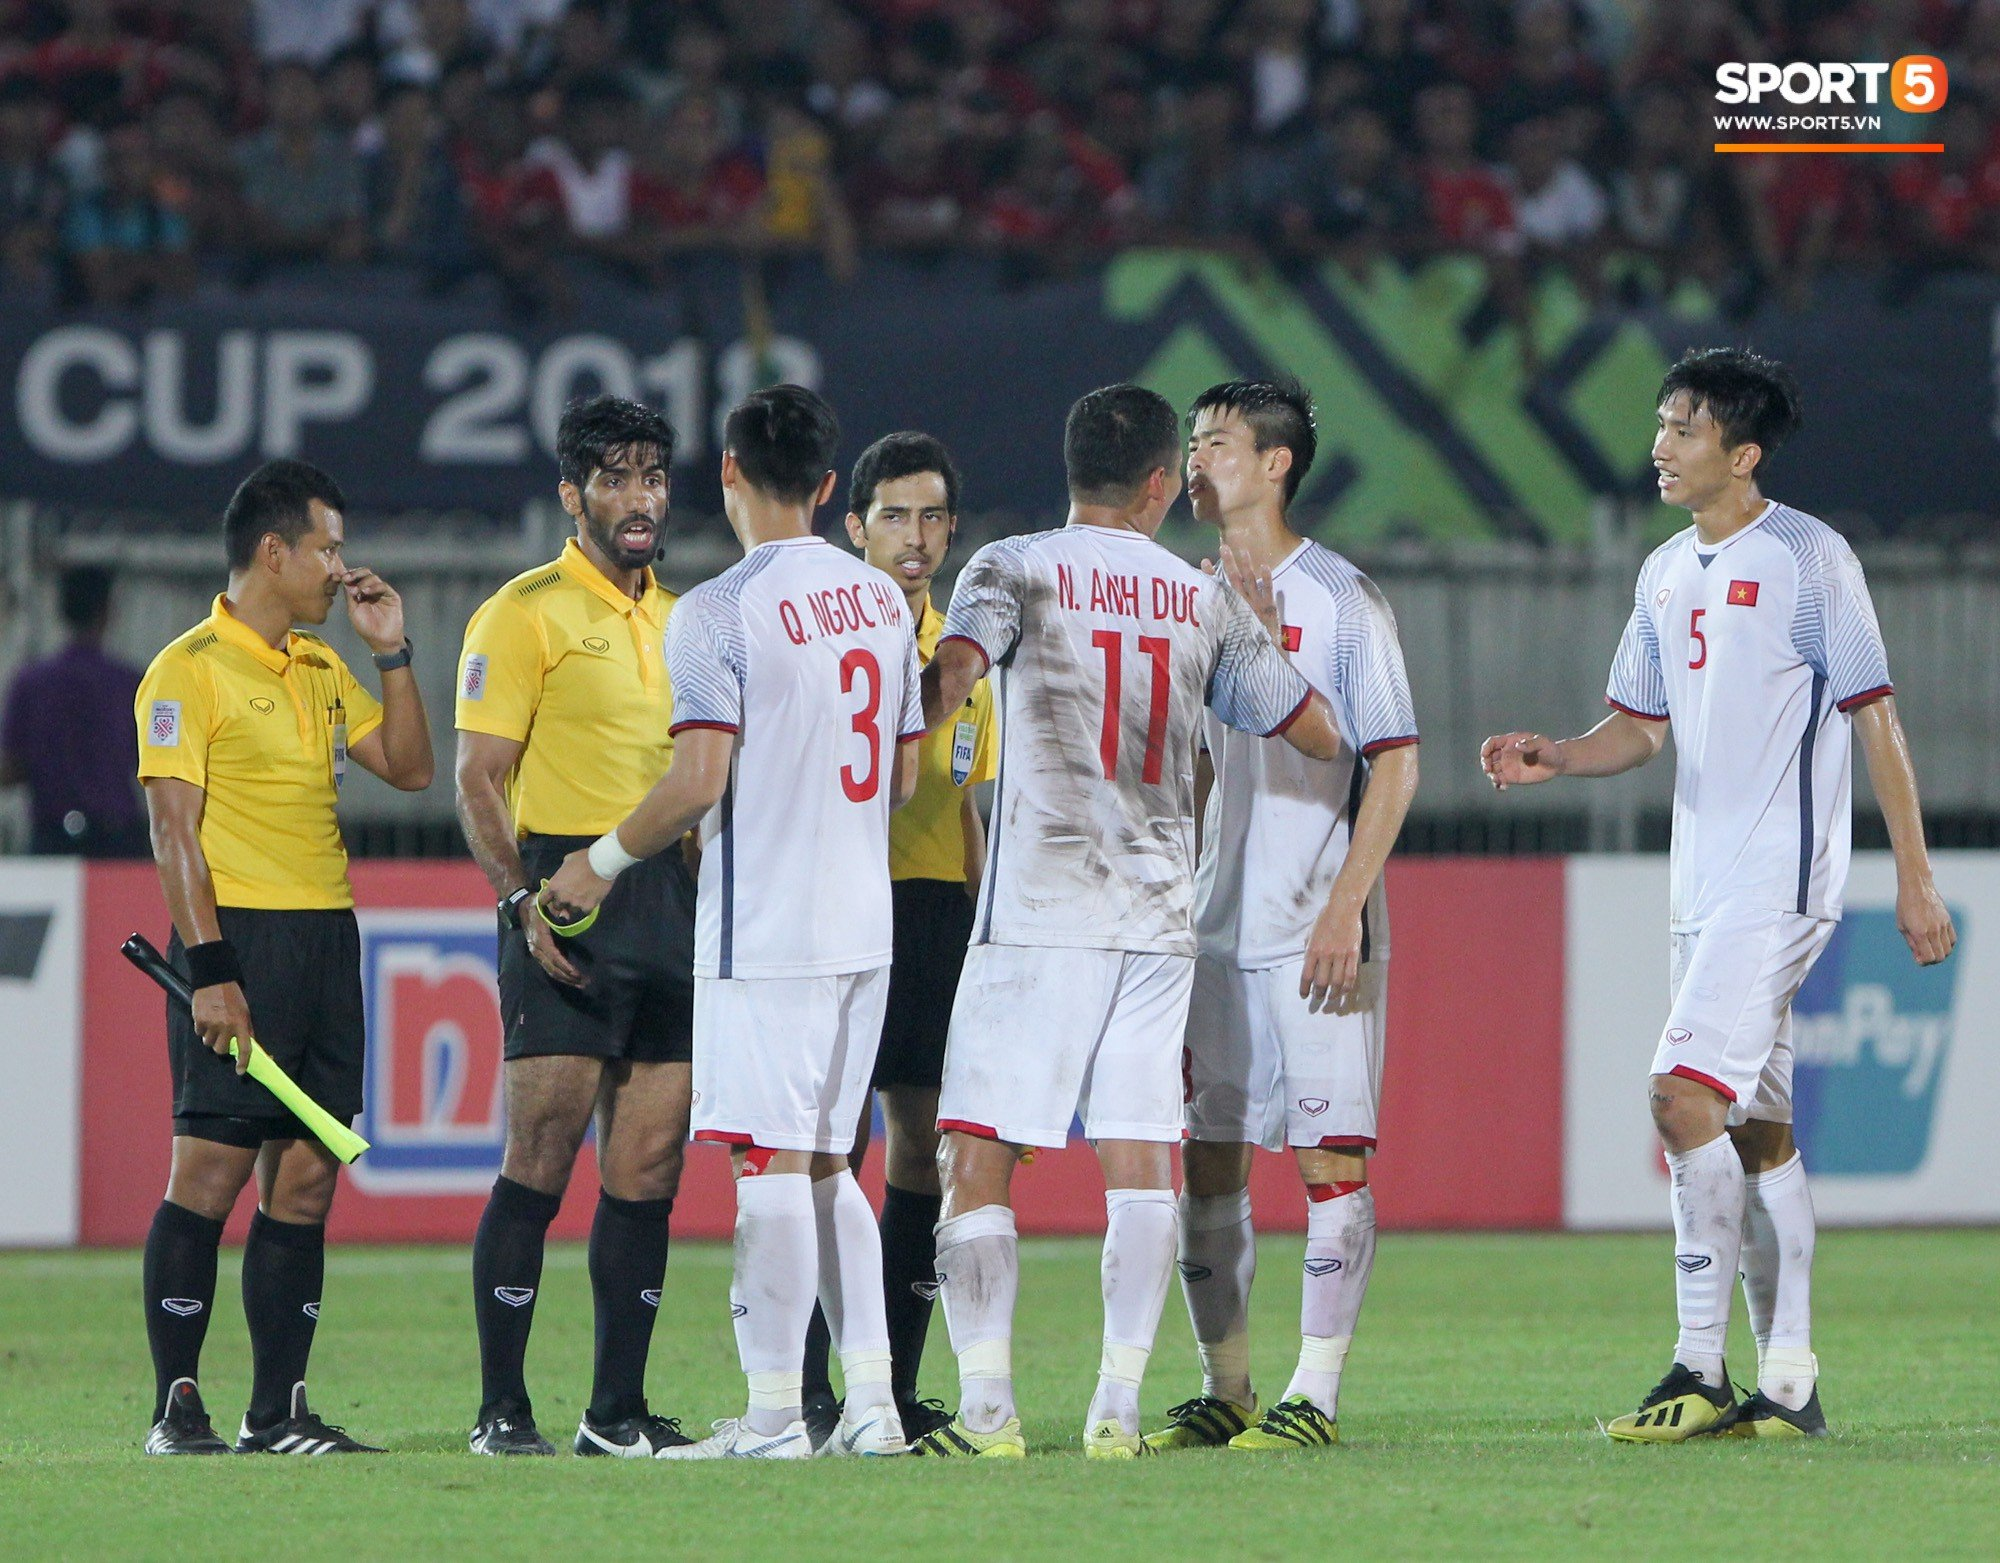 Pictures of Doan Van Hau are unhappy, just a referee's guide to & # 39; Myanmar vs Vietnam game 9